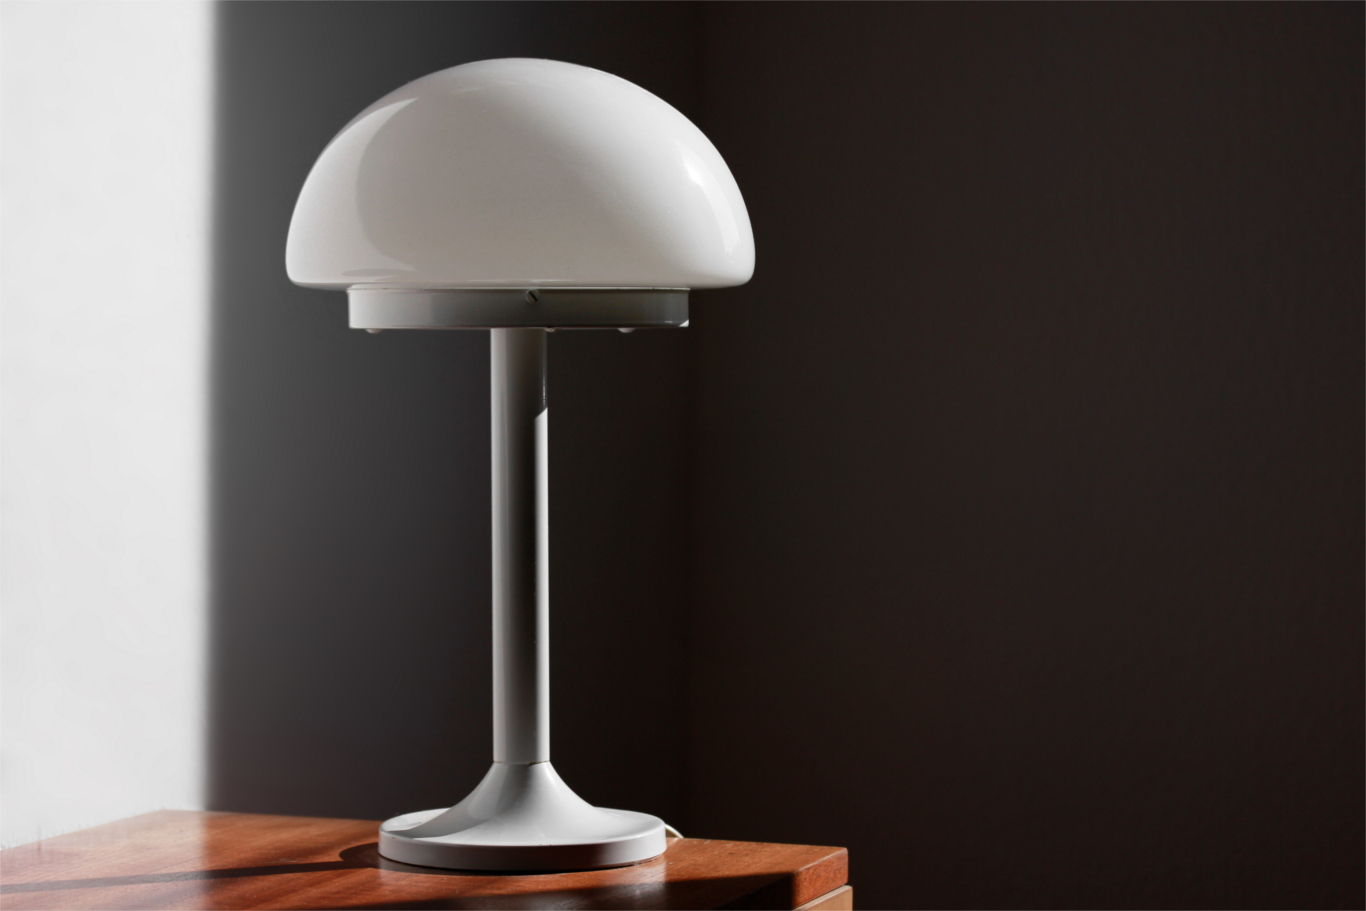 Bauhaus style modern desk lamp with mushroom shape spaceage vintage midcentury design white